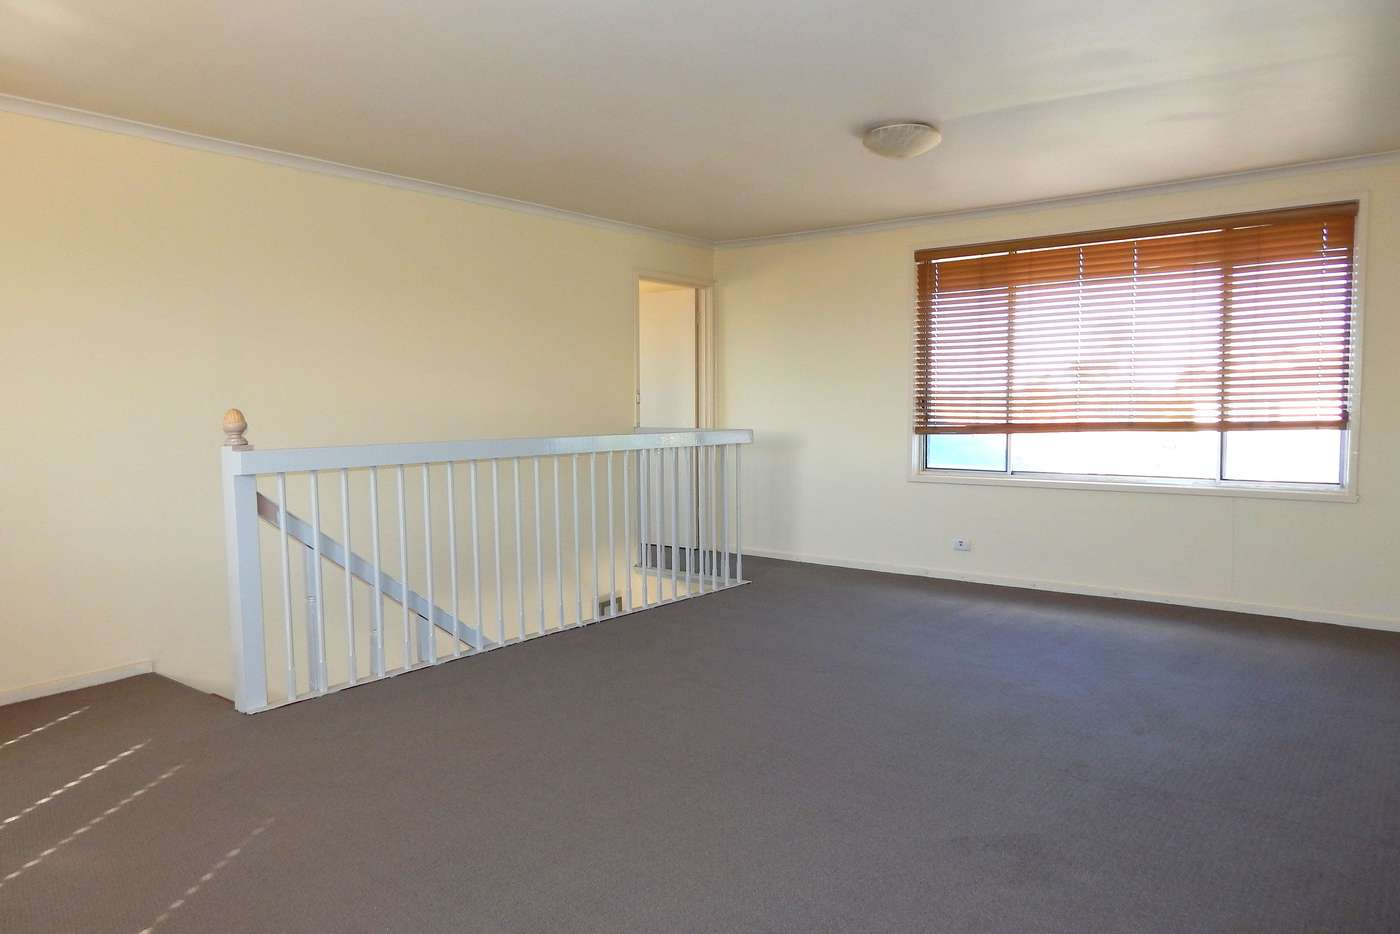 Sixth view of Homely house listing, 44 Bickley Avenue, Thomastown VIC 3074